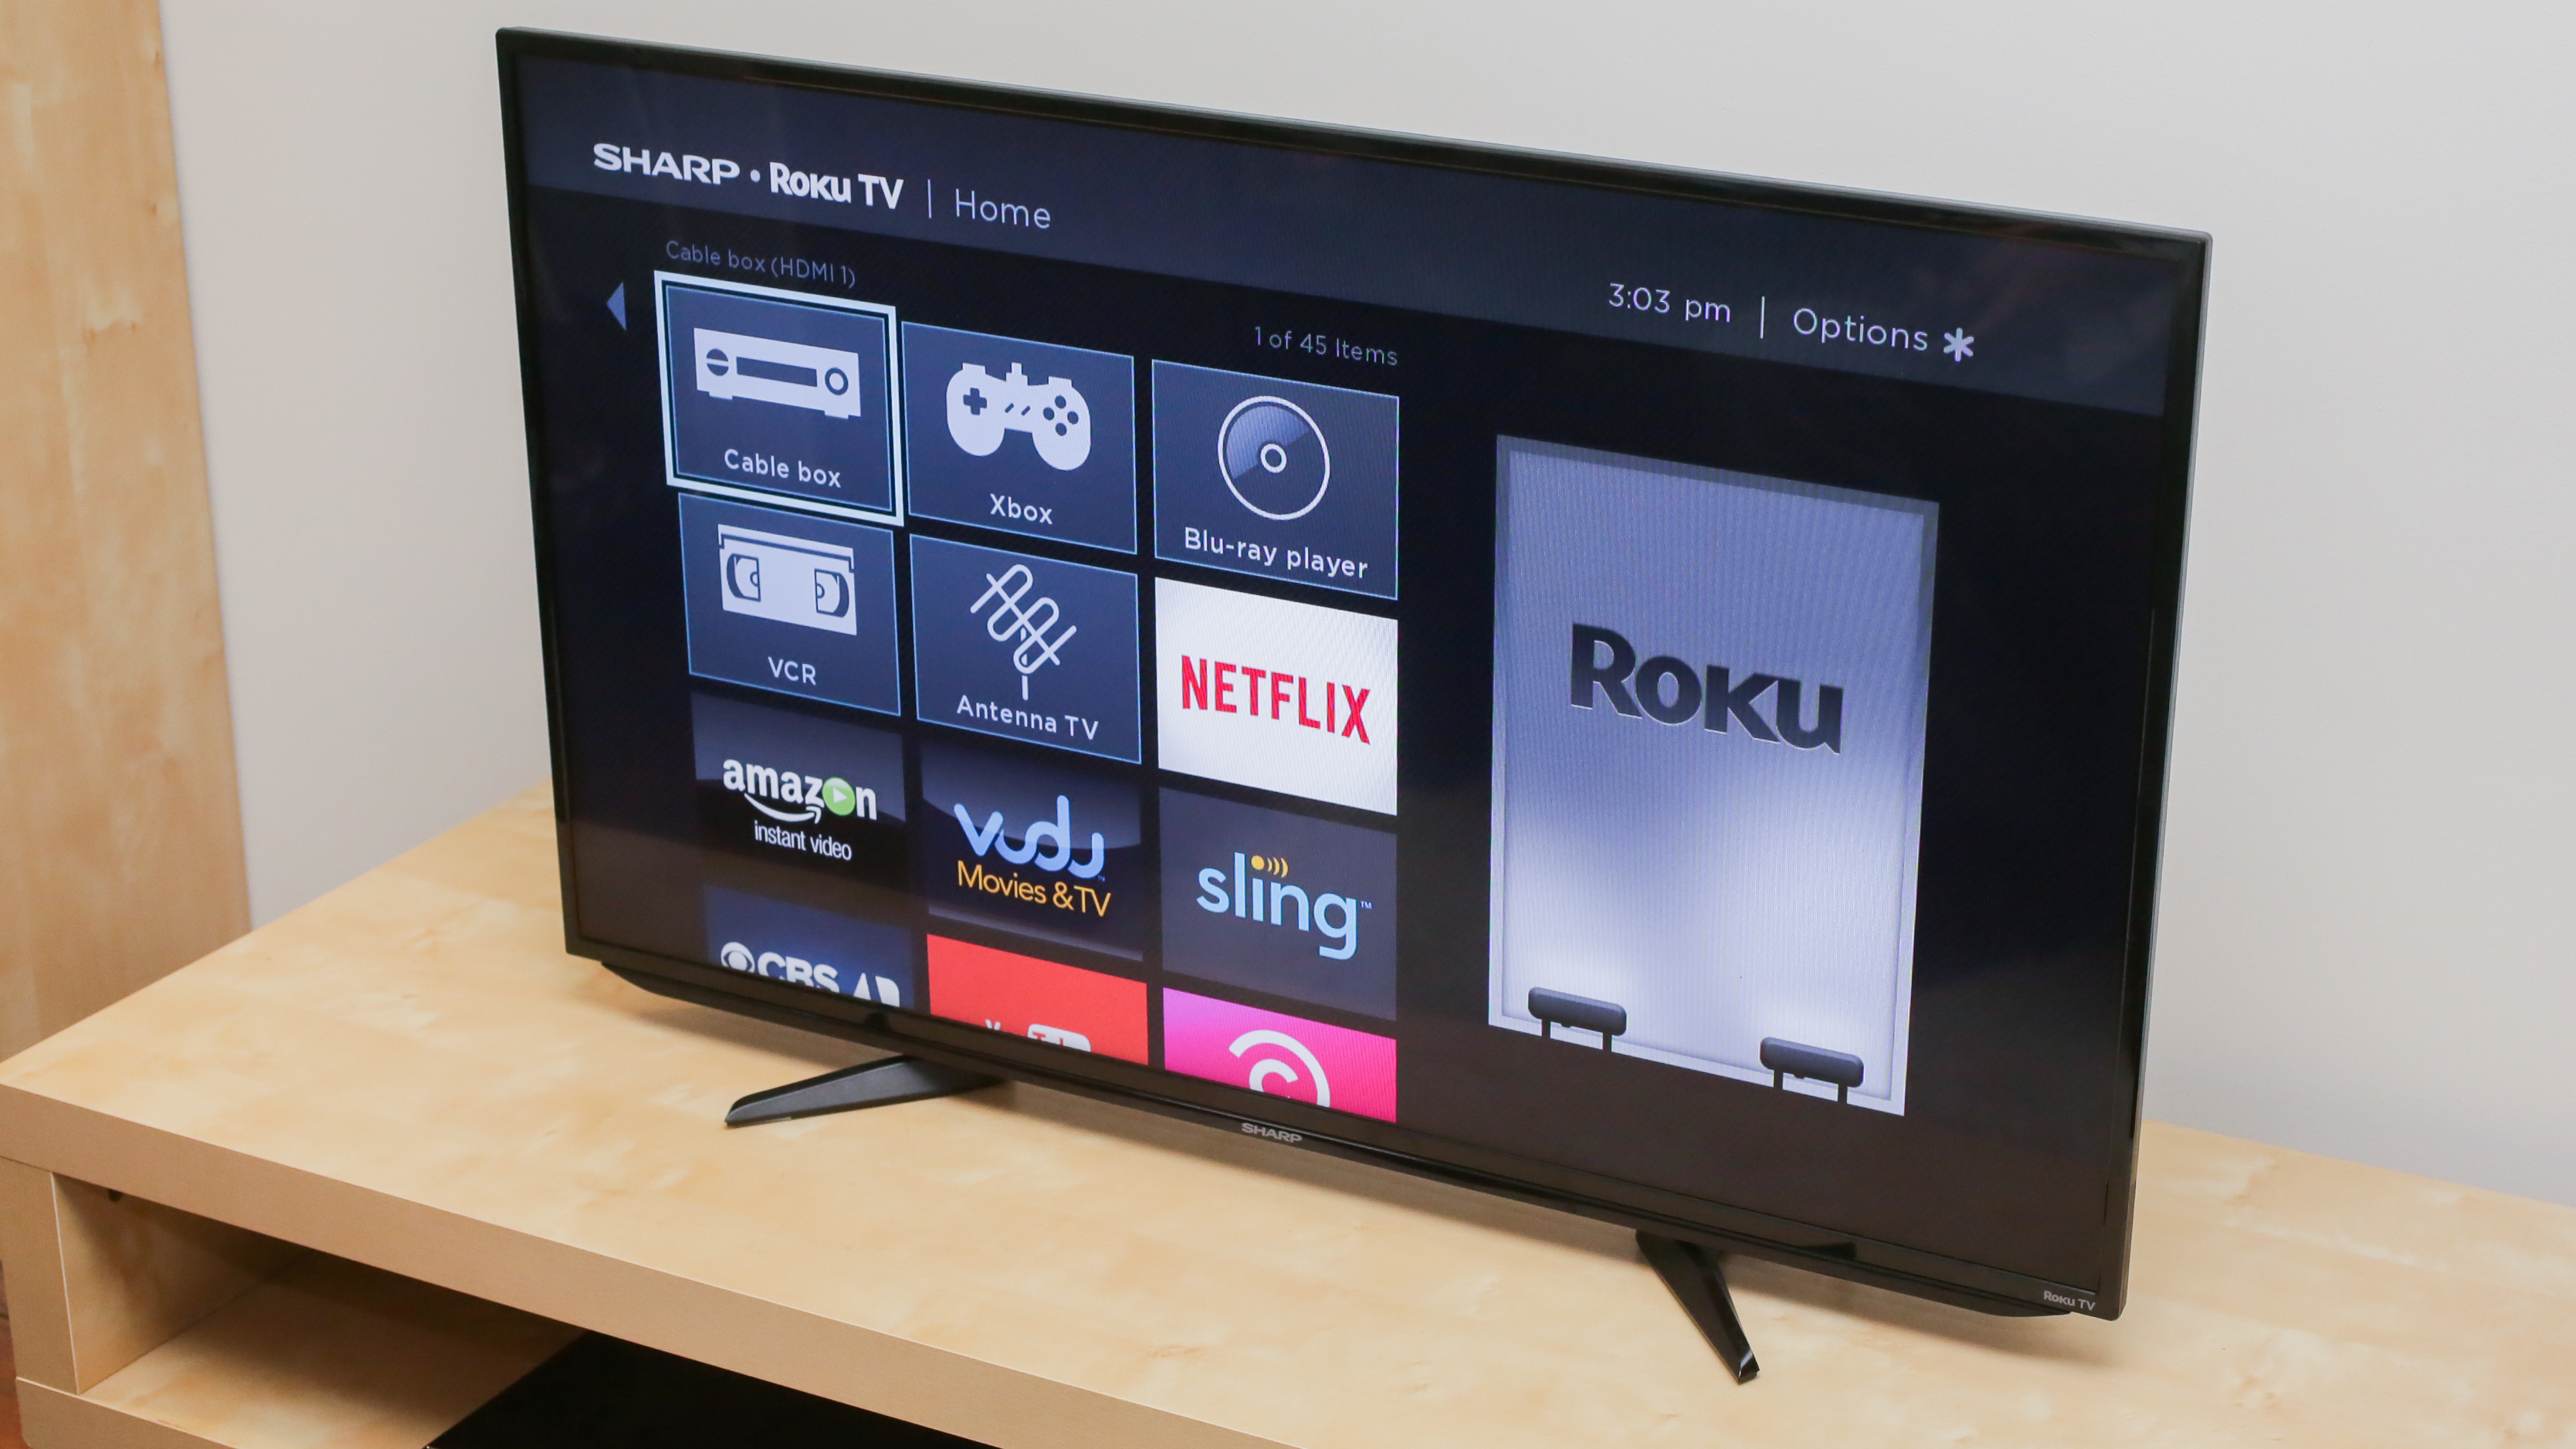 The best smart TV is among the most affordable